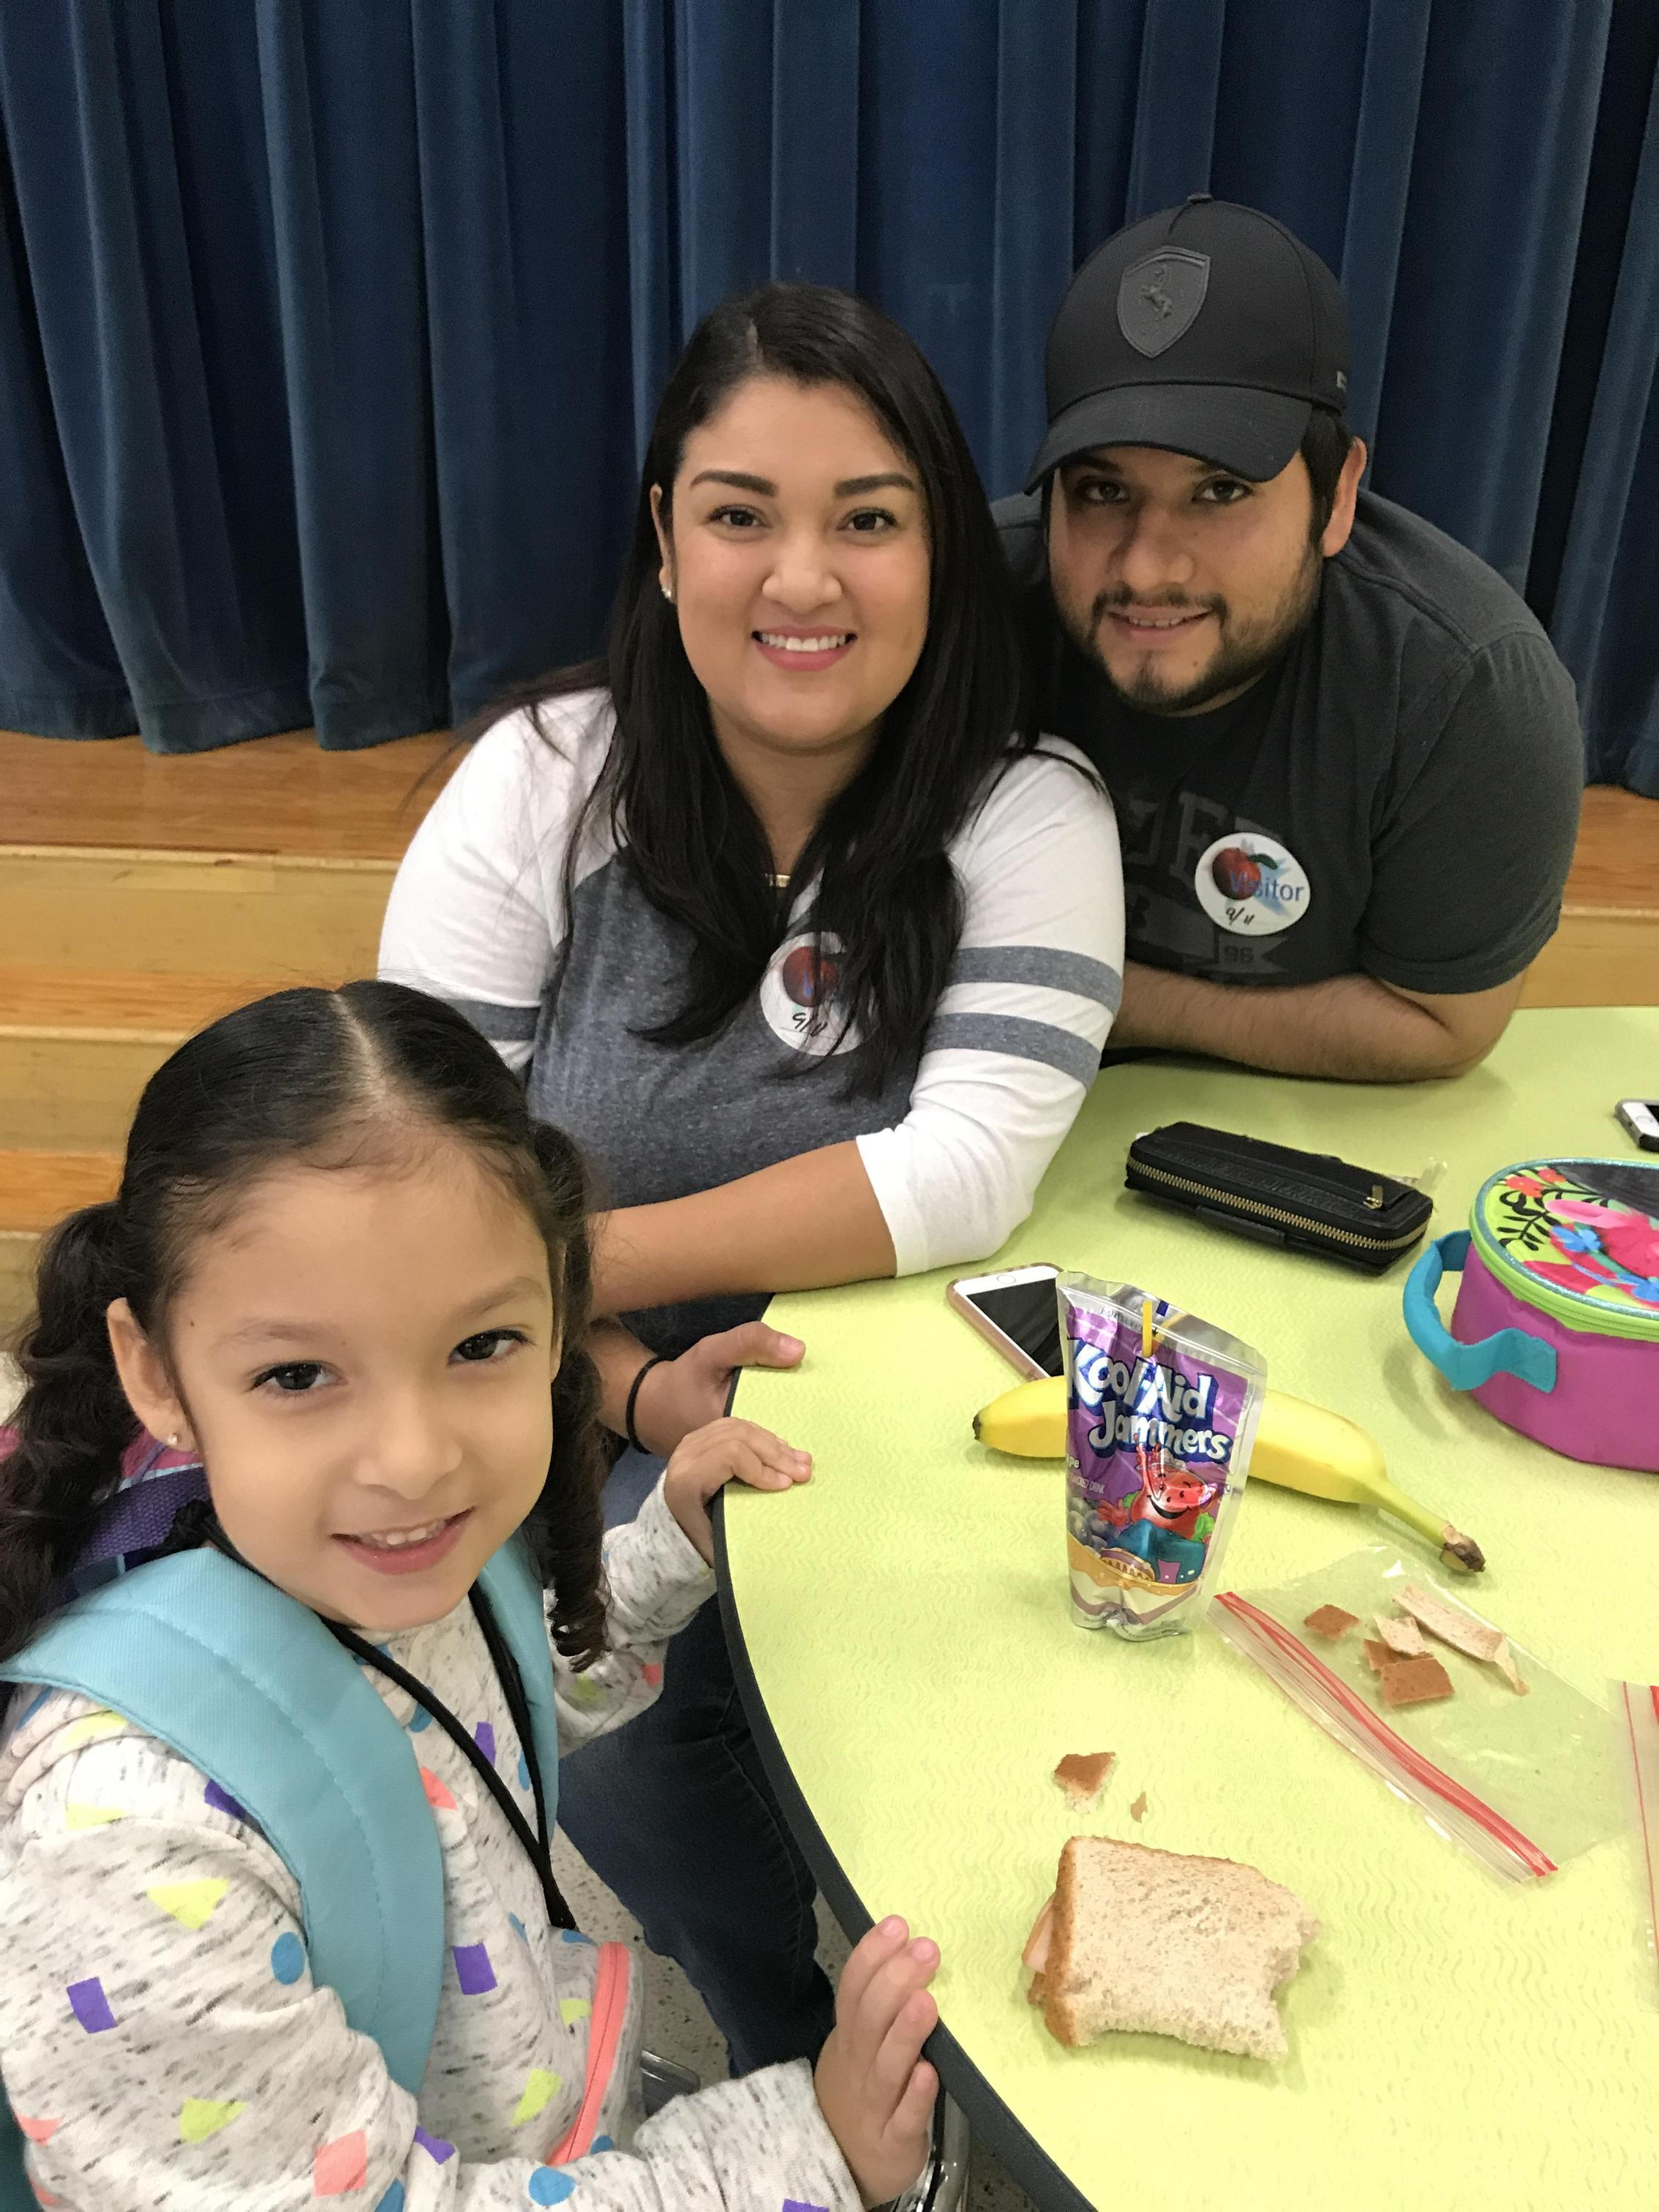 mom, dad and daughter having lunch together